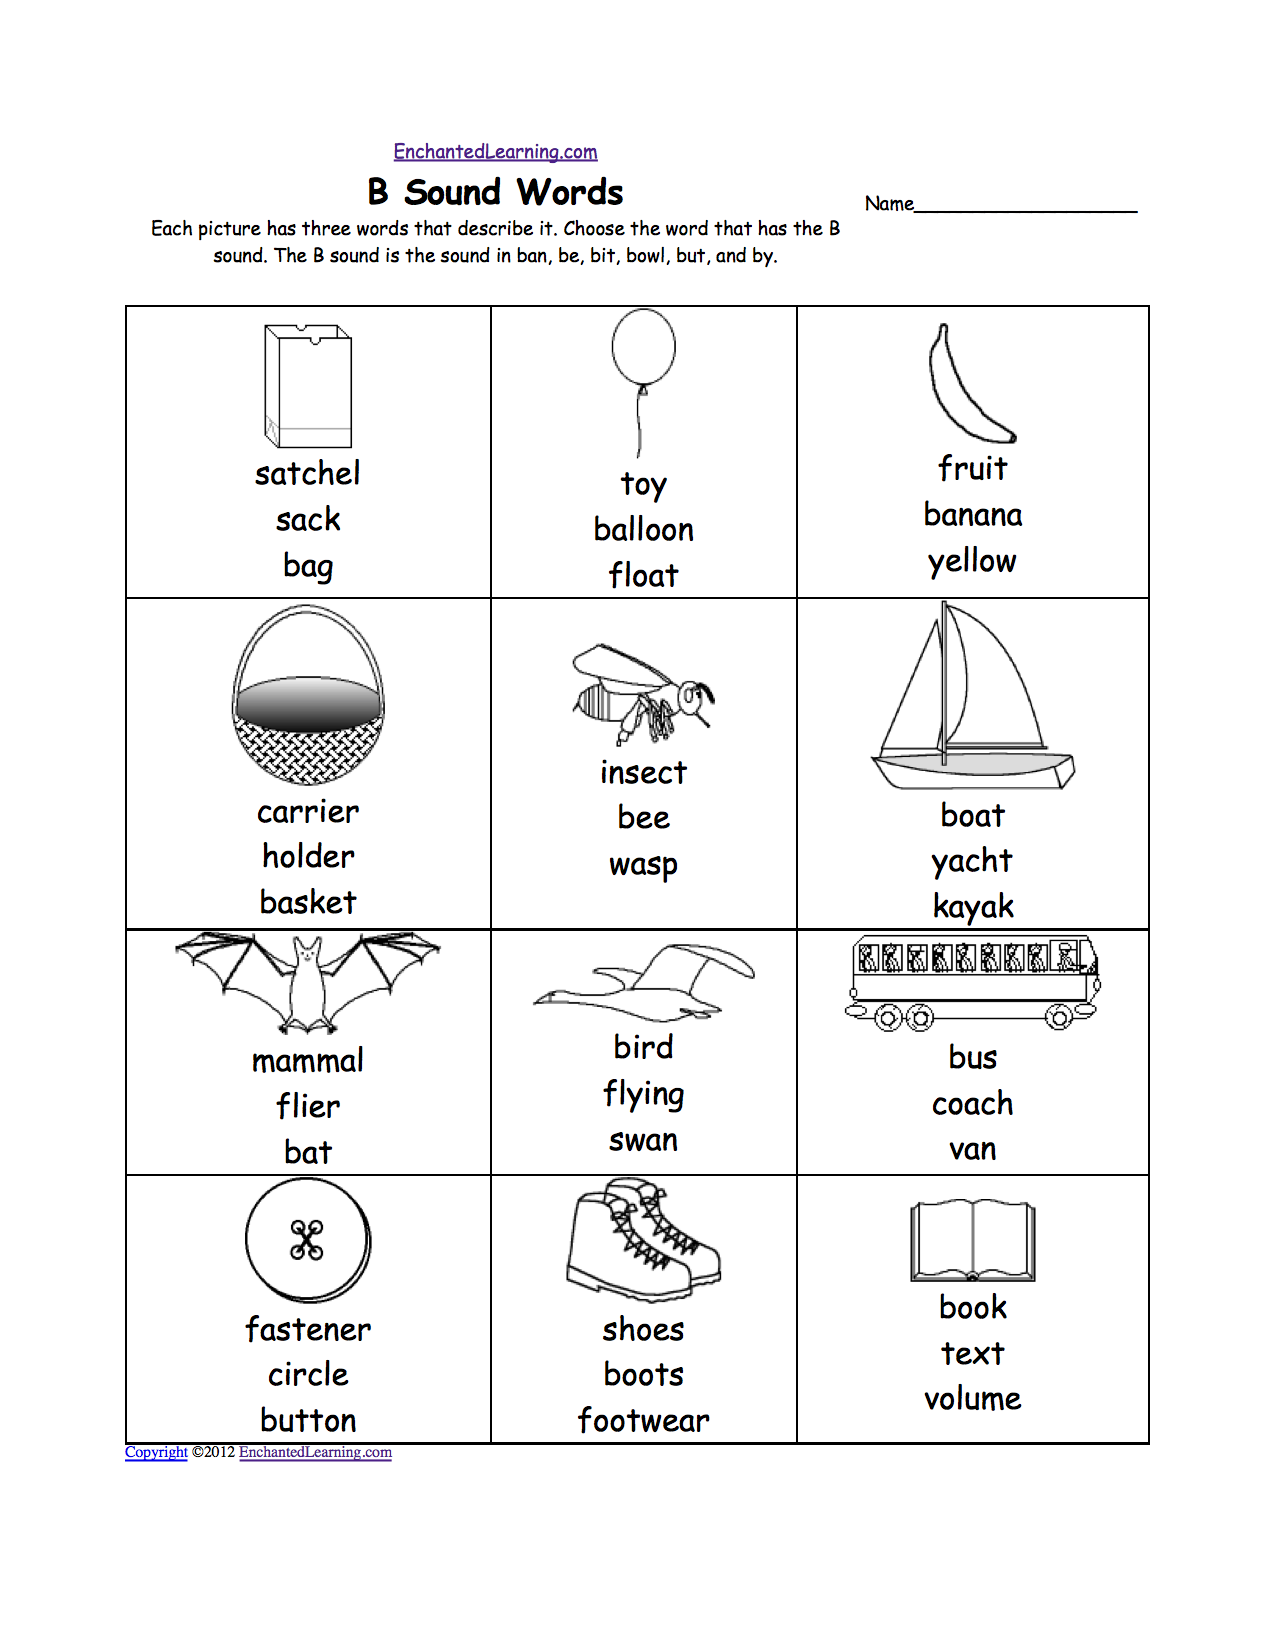 Weirdmailus  Stunning Phonics Worksheets Multiple Choice Worksheets To Print  With Foxy Quotbquot Sound Phonics Worksheet Multiple Choice Each Picture Has Three Words That Describe It Choose The Word That Has A Quotbquot Sound The Quotbquot Sound Is The Sound  With Awesome Volume Of Rectangular Prism Worksheet Also Charles Law Worksheet Answer Key In Addition The Skeletal System Worksheet And Mitosis Versus Meiosis Worksheet As Well As Handwriting Worksheets Com Additionally Math Worksheets Th Grade From Enchantedlearningcom With Weirdmailus  Foxy Phonics Worksheets Multiple Choice Worksheets To Print  With Awesome Quotbquot Sound Phonics Worksheet Multiple Choice Each Picture Has Three Words That Describe It Choose The Word That Has A Quotbquot Sound The Quotbquot Sound Is The Sound  And Stunning Volume Of Rectangular Prism Worksheet Also Charles Law Worksheet Answer Key In Addition The Skeletal System Worksheet From Enchantedlearningcom